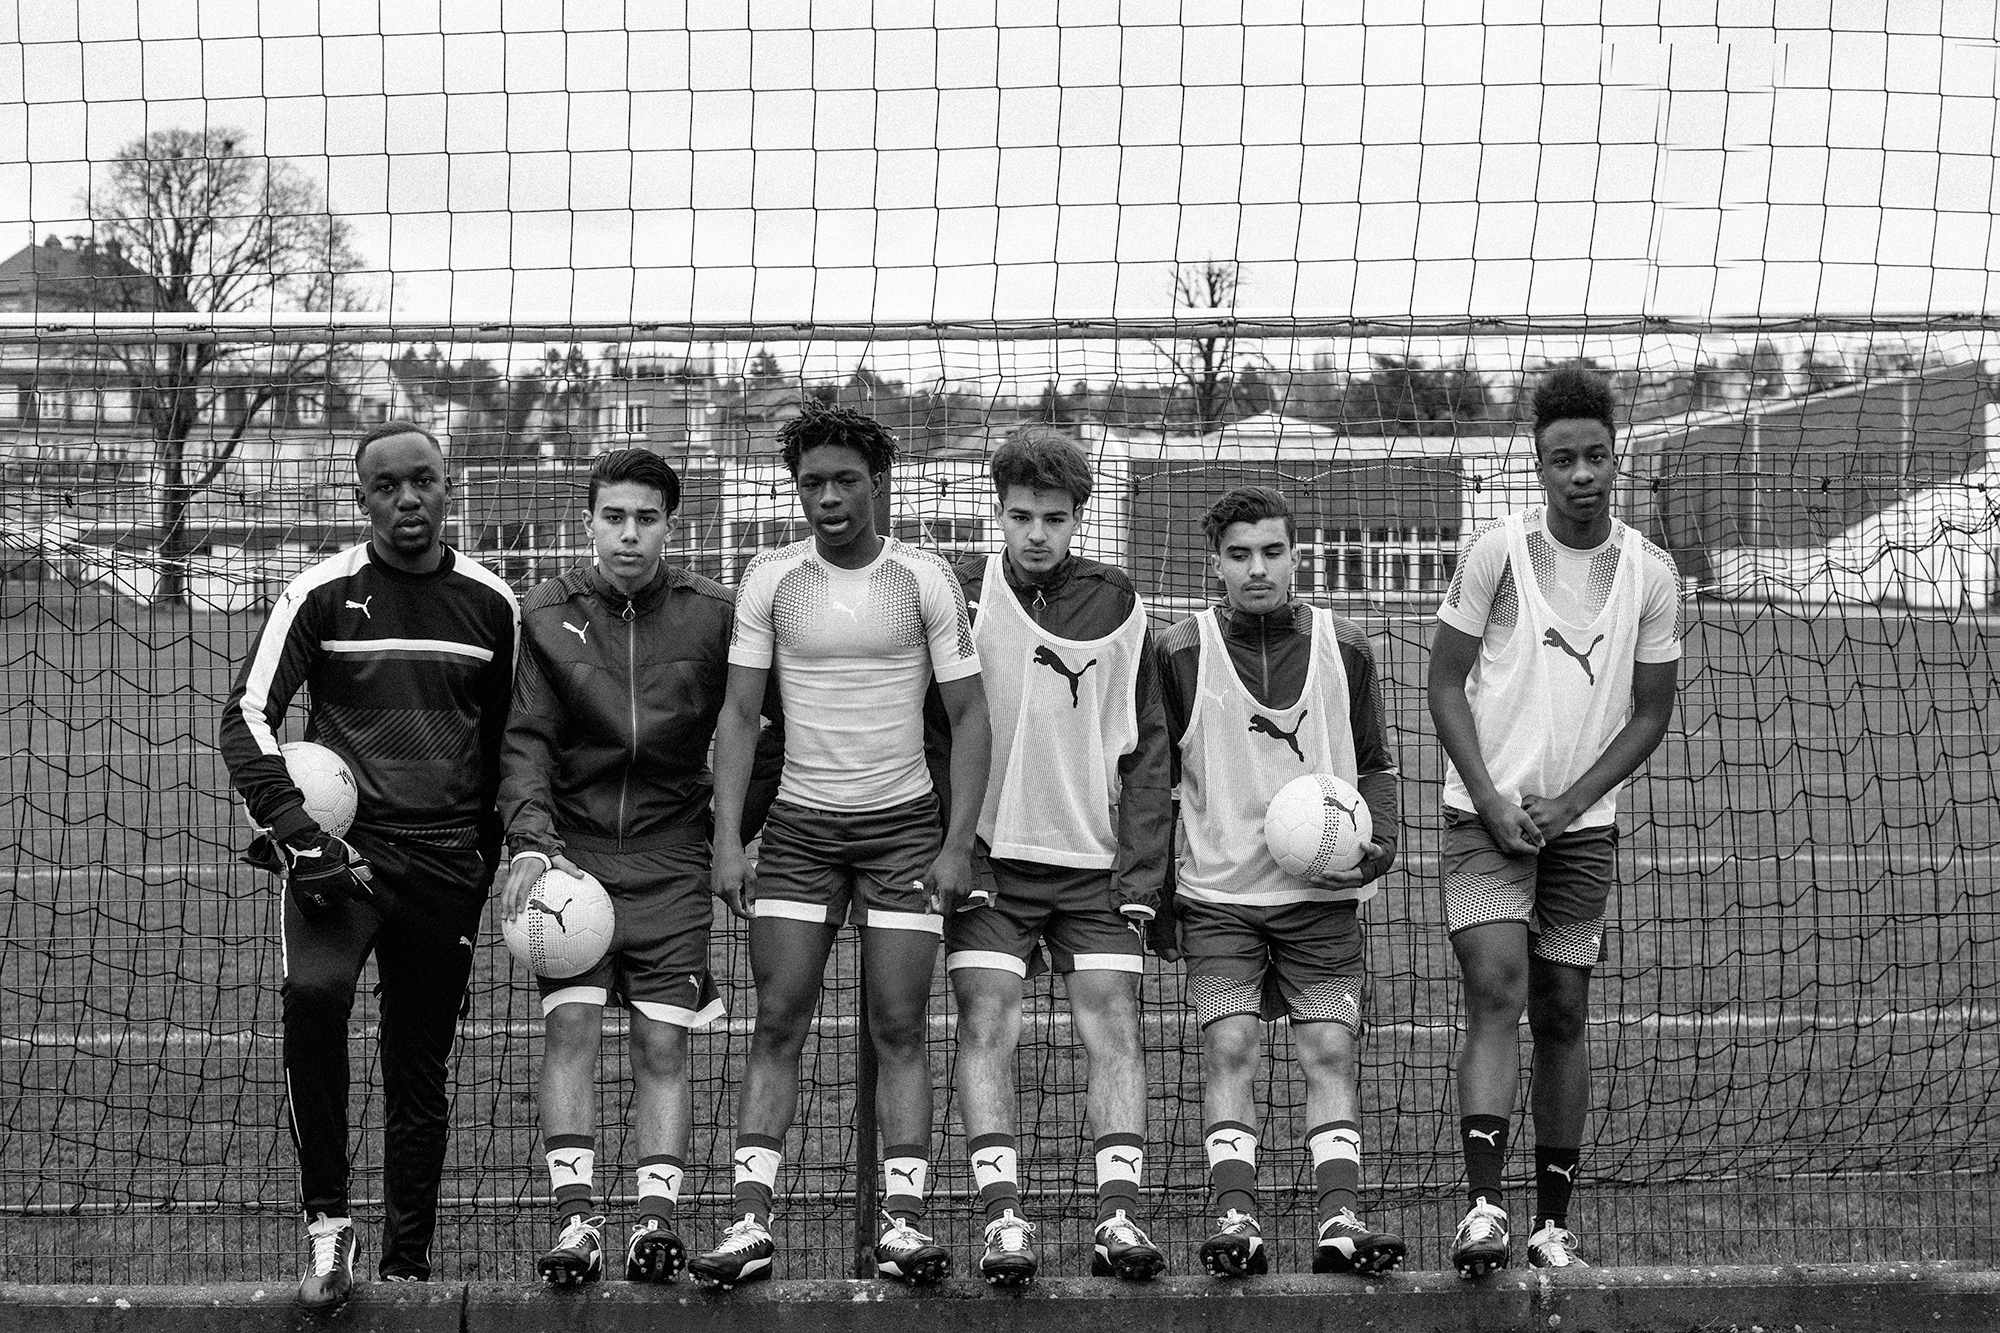 PUMA FOOTBALL PARIS street youth athletes